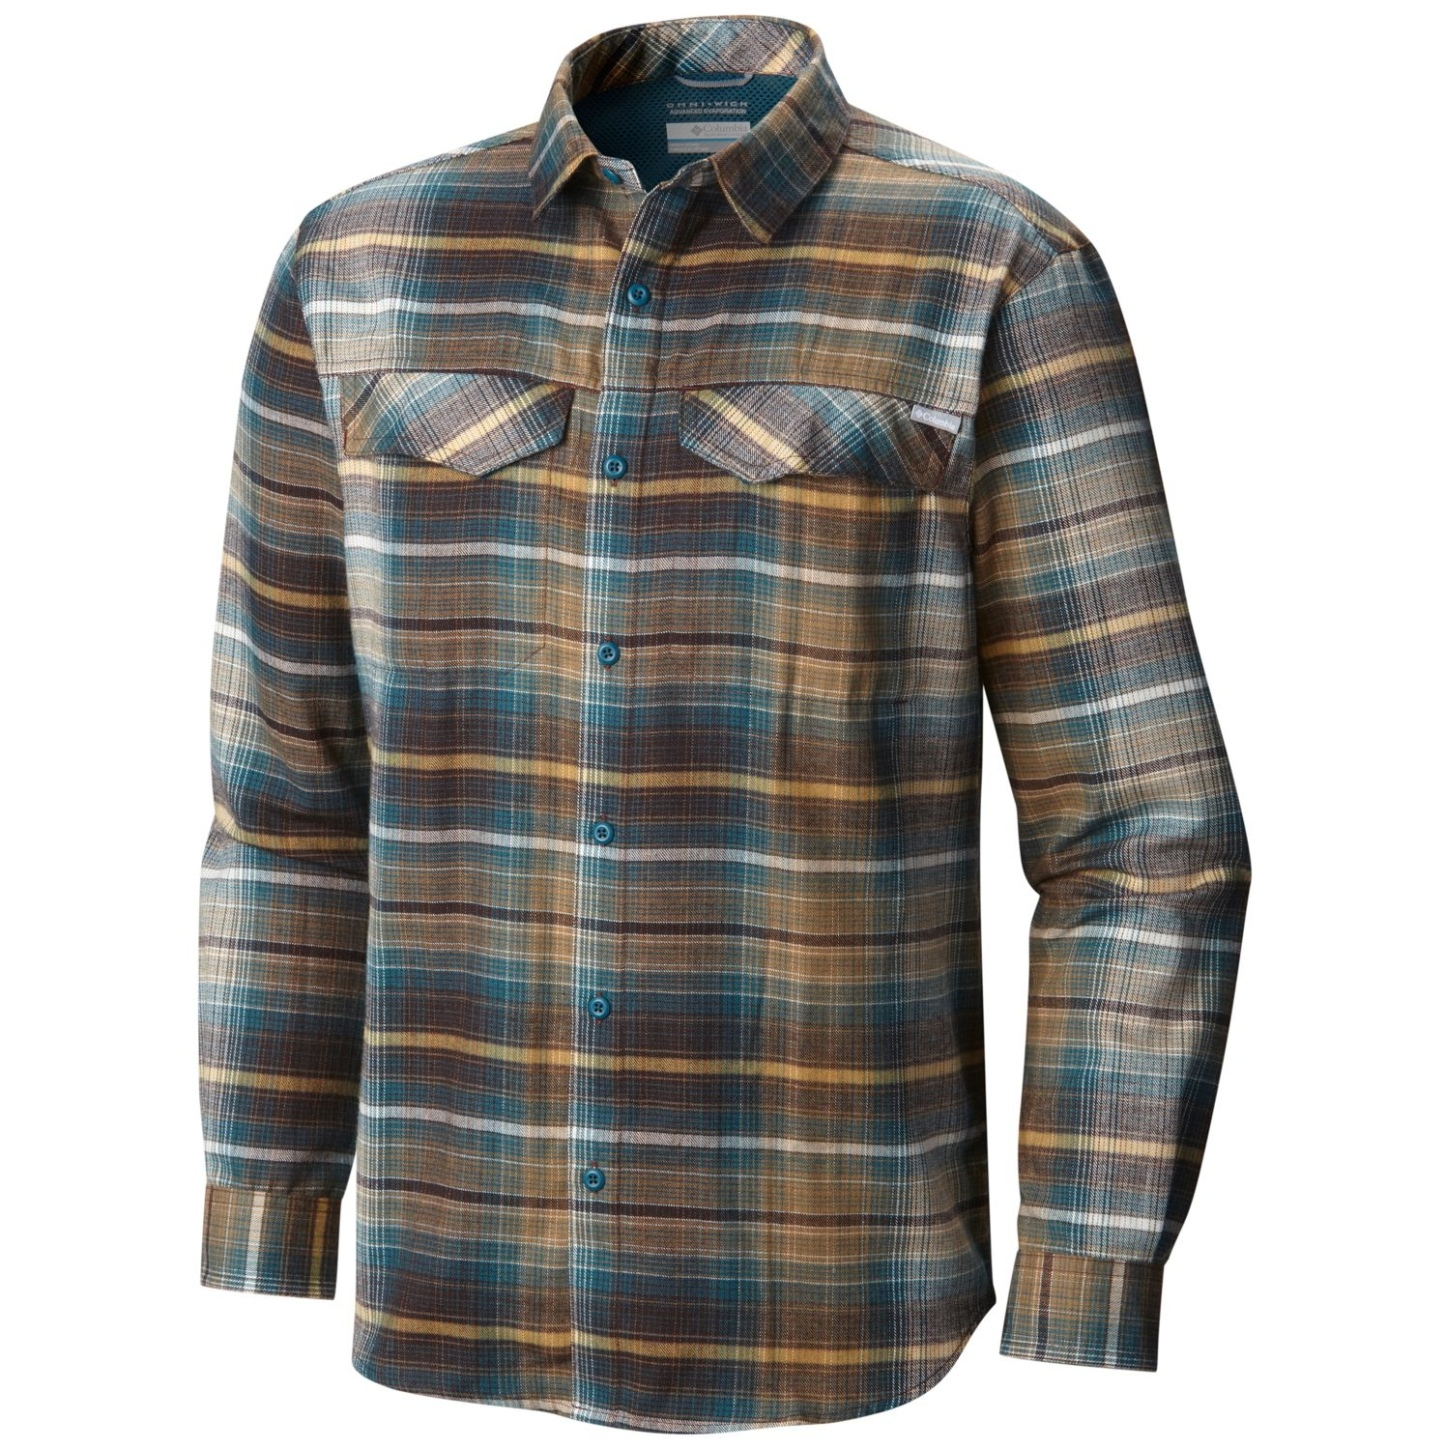 Columbia Men's Silver Ridge Flannel Long Sleeve Shirt New Cinder Ombre Plaid-30